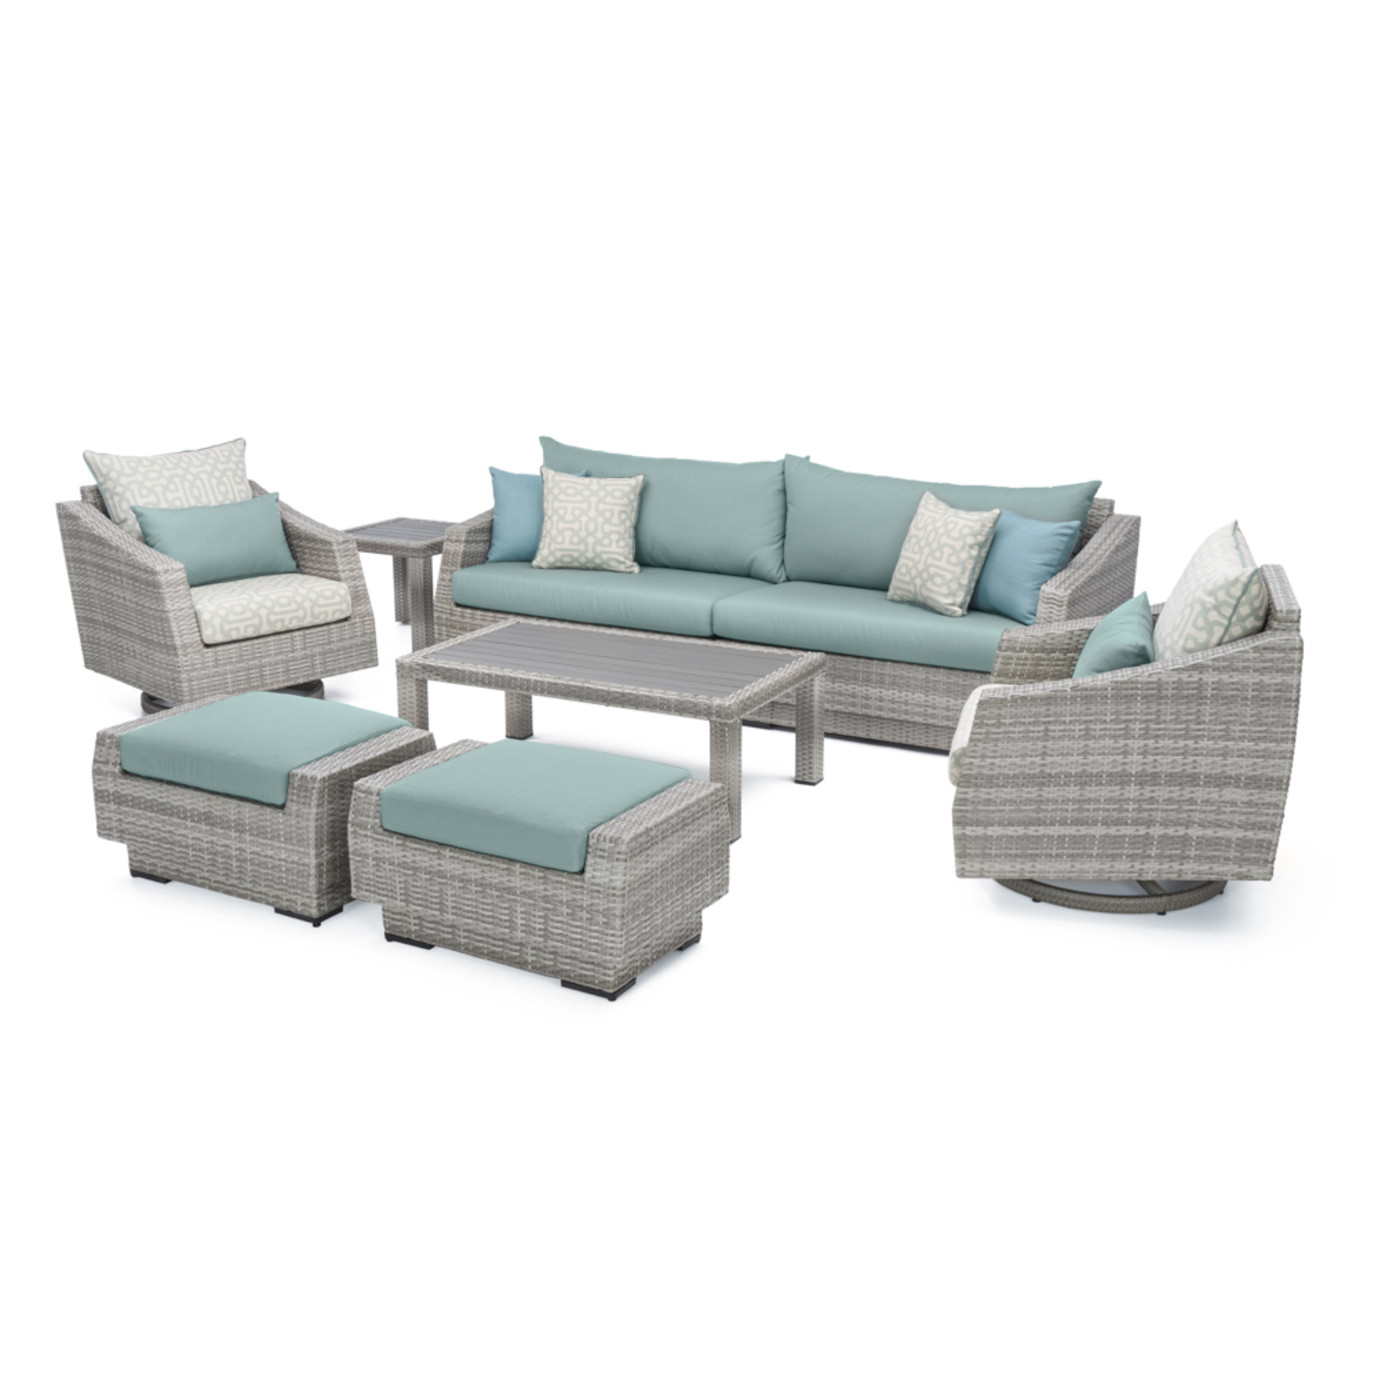 Cannes™ 8pc Sofa & Club Chair Set - Spa Blue Design